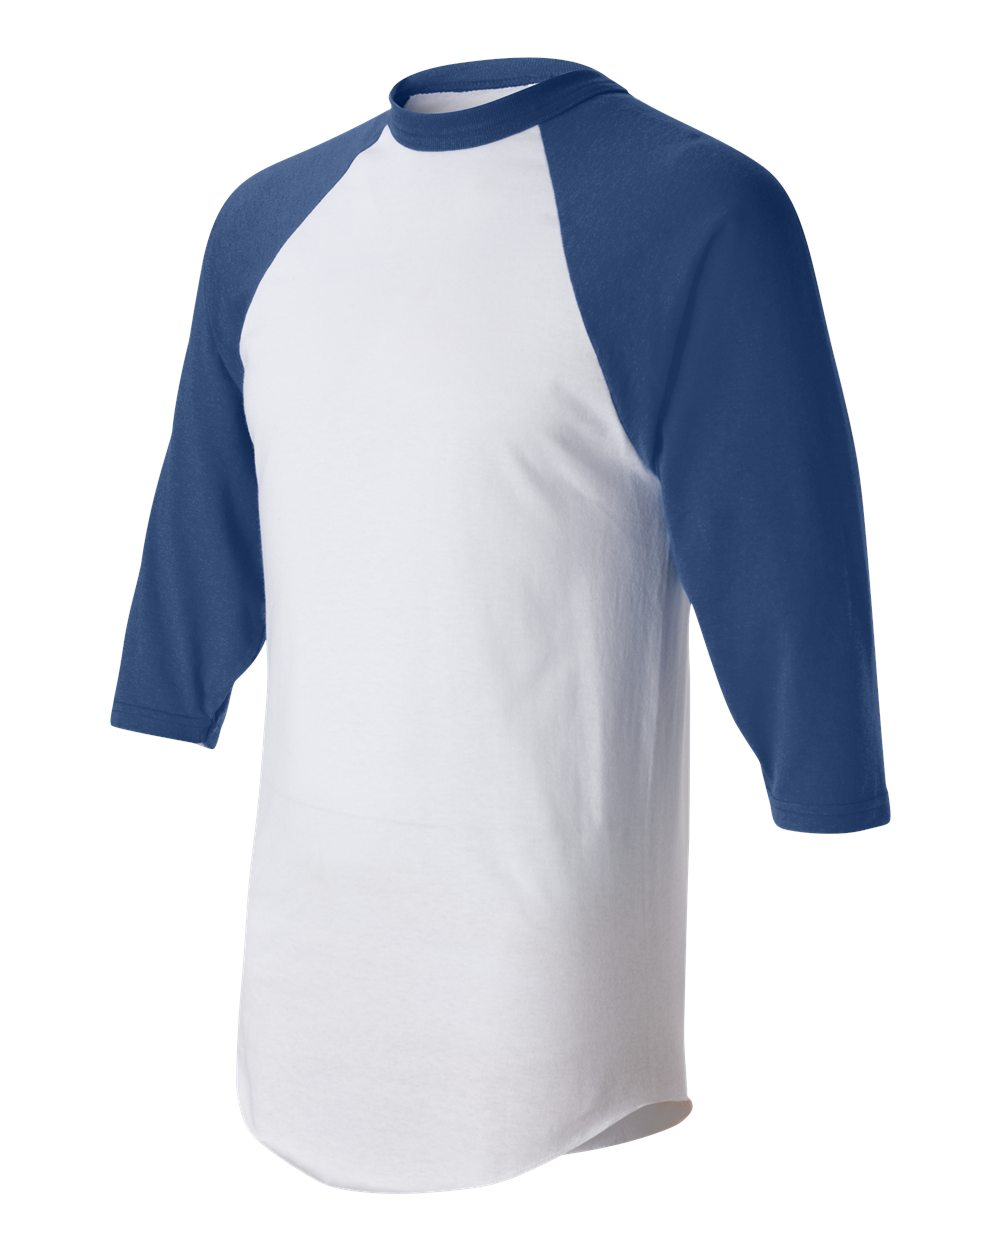 d5272e7f499 Augusta Sportswear 420 - Three-Quarter Sleeve Baseball Jersey - Friendly  Arctic Printing